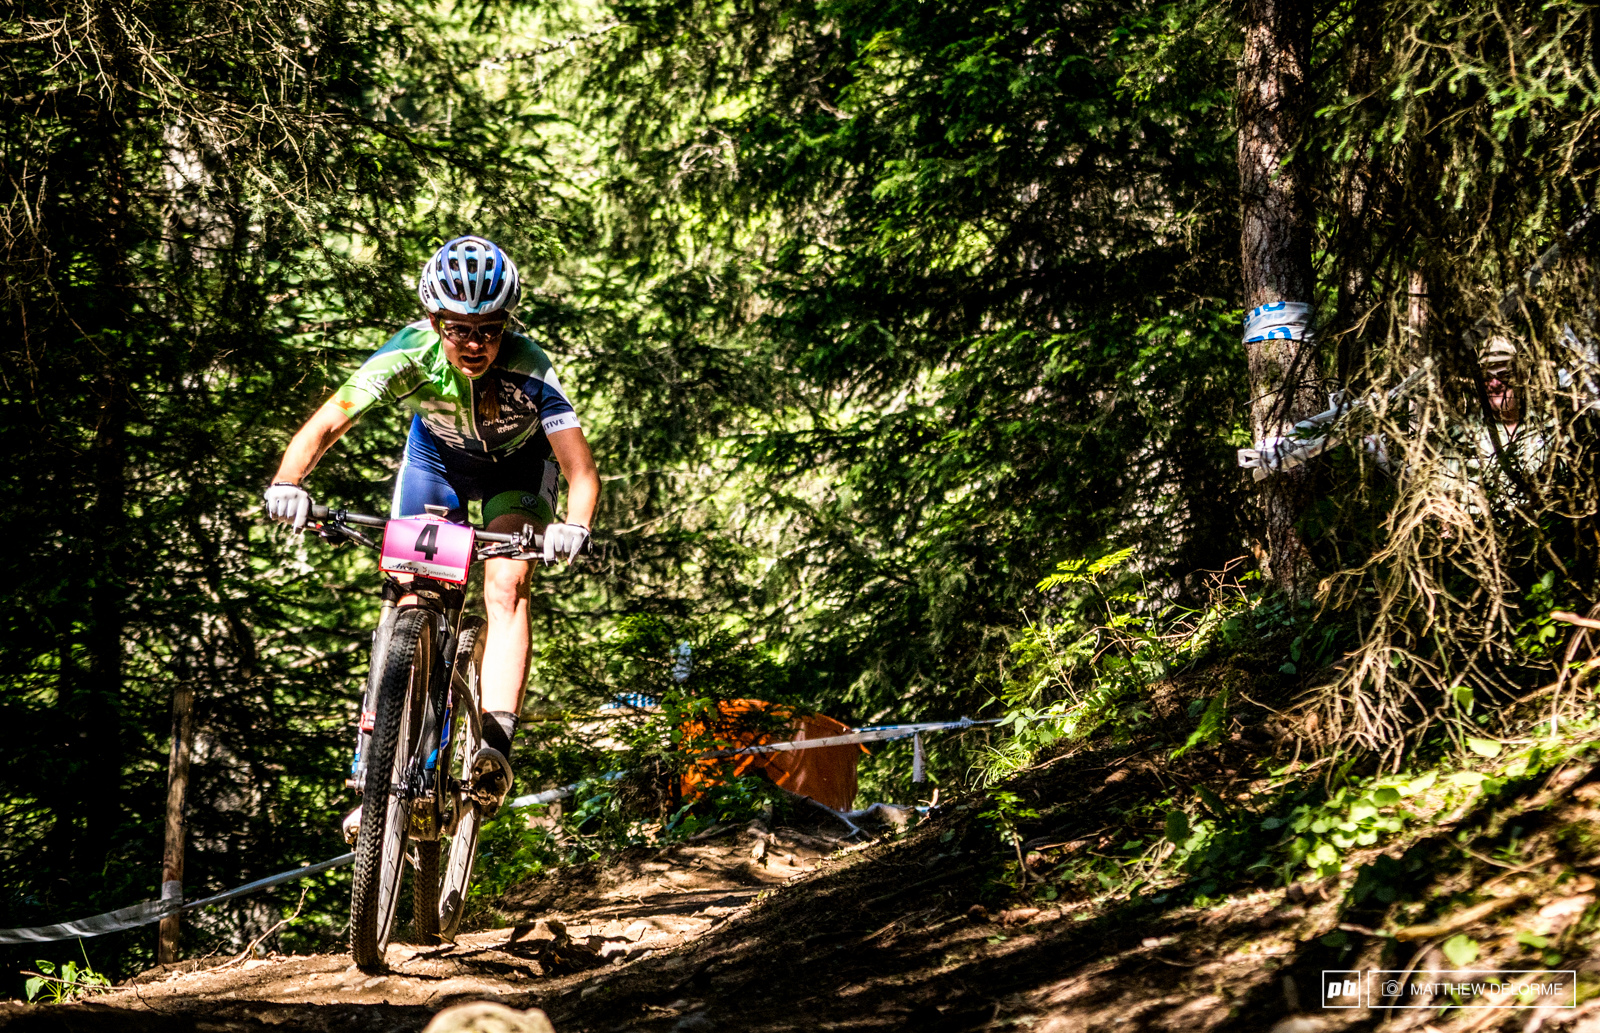 Anne Tauber had a strong ride in the heat to third place.